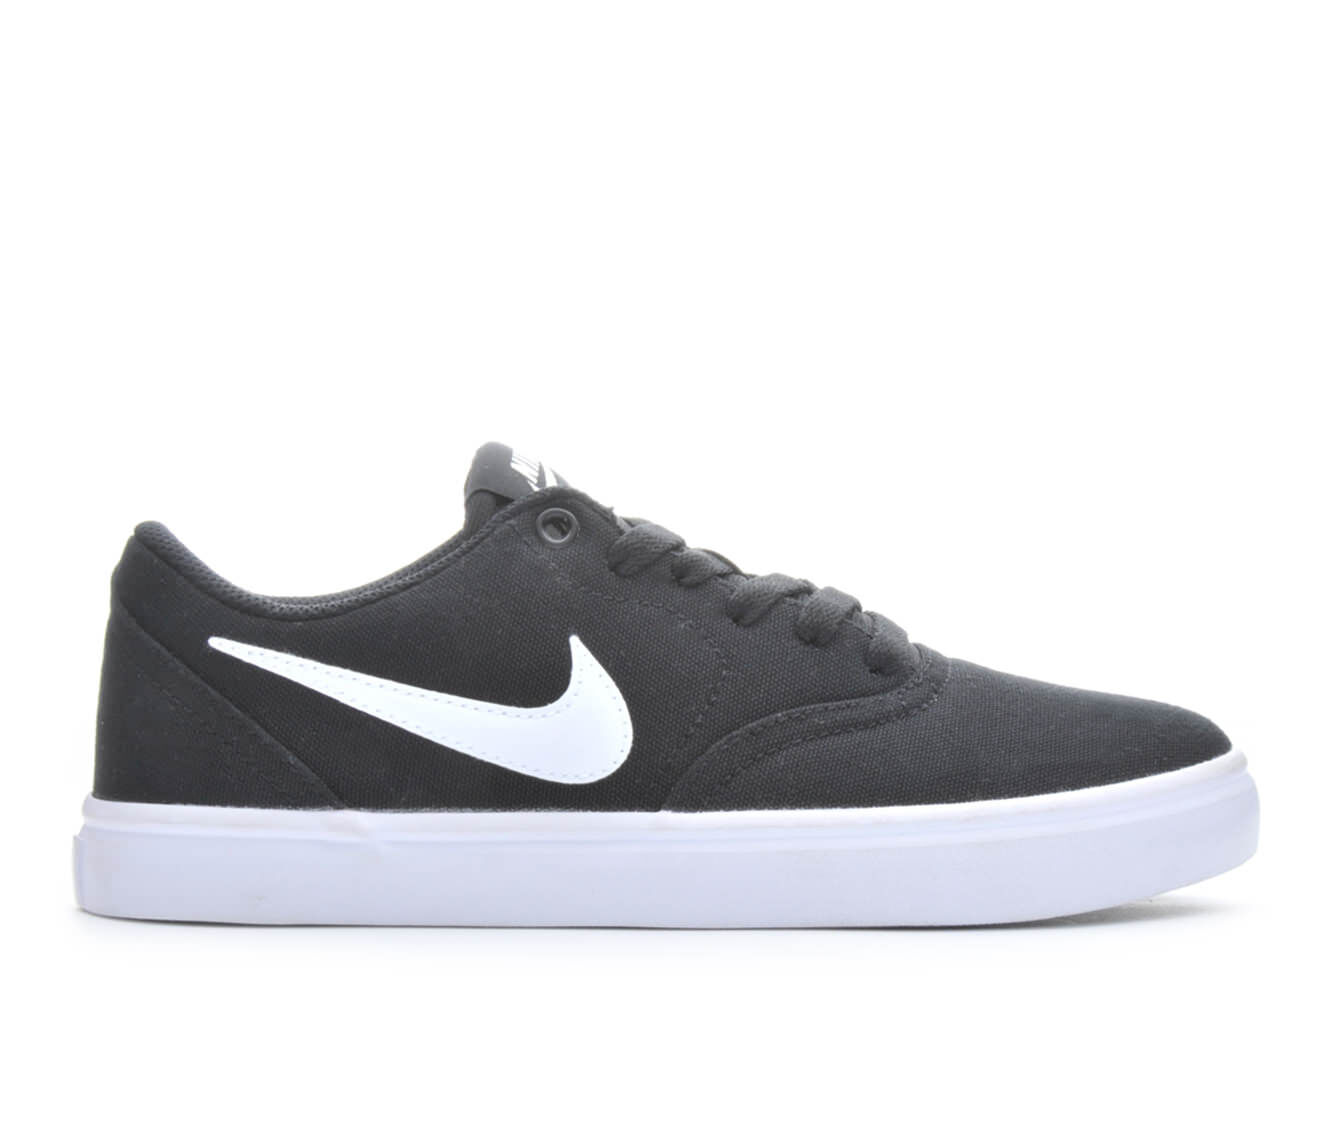 all styles Women's Nike Solar Check Canvas Skate Shoes Black/Whit/Plat